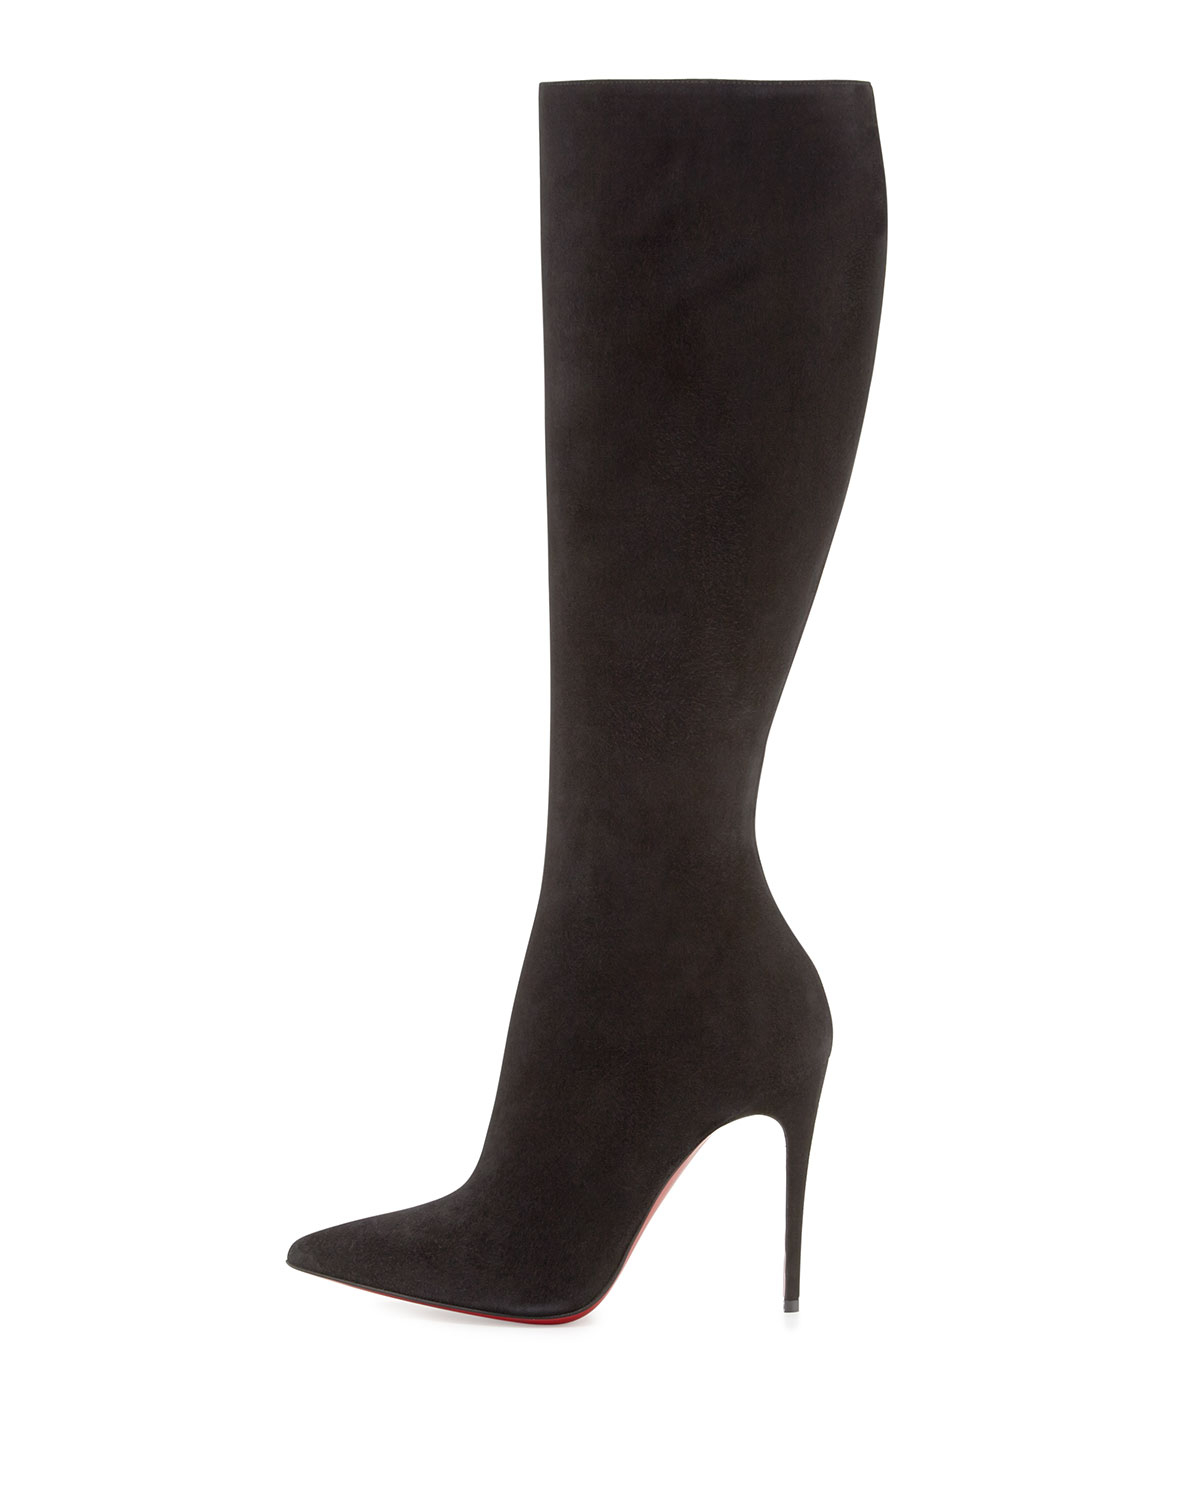 christian louboutin pointed-toe thigh-high boots | The Little Arts ...